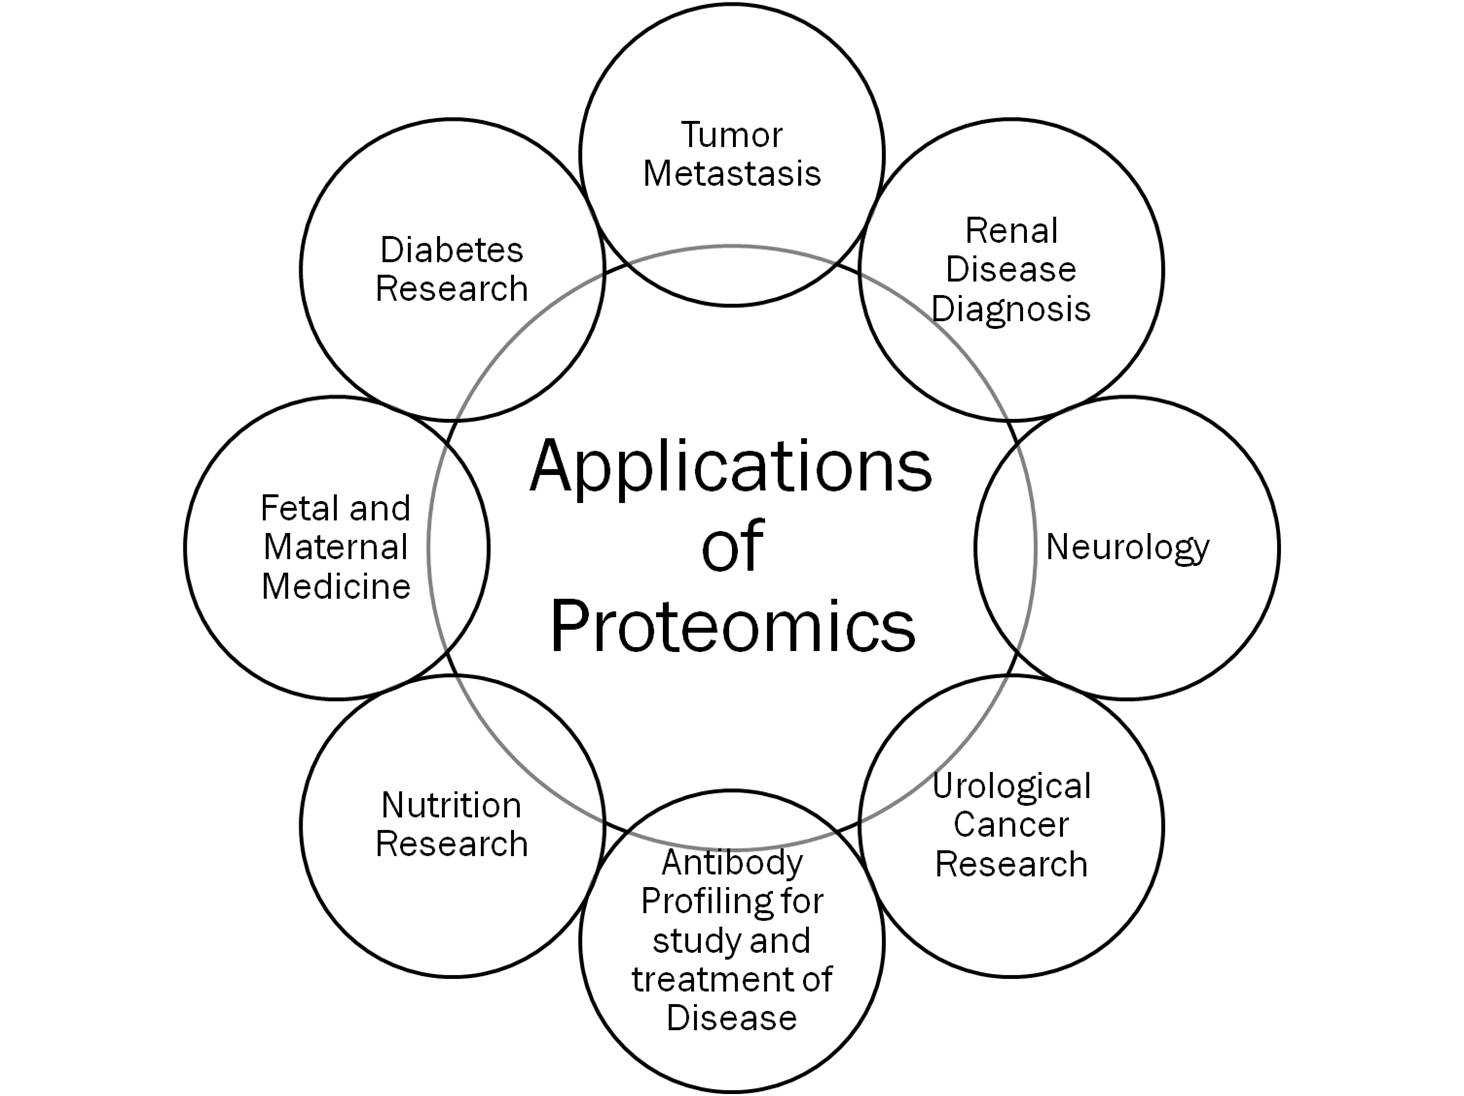 Sgugenetics applications of proteomics flow chart applications of proteomics flow chart geenschuldenfo Image collections